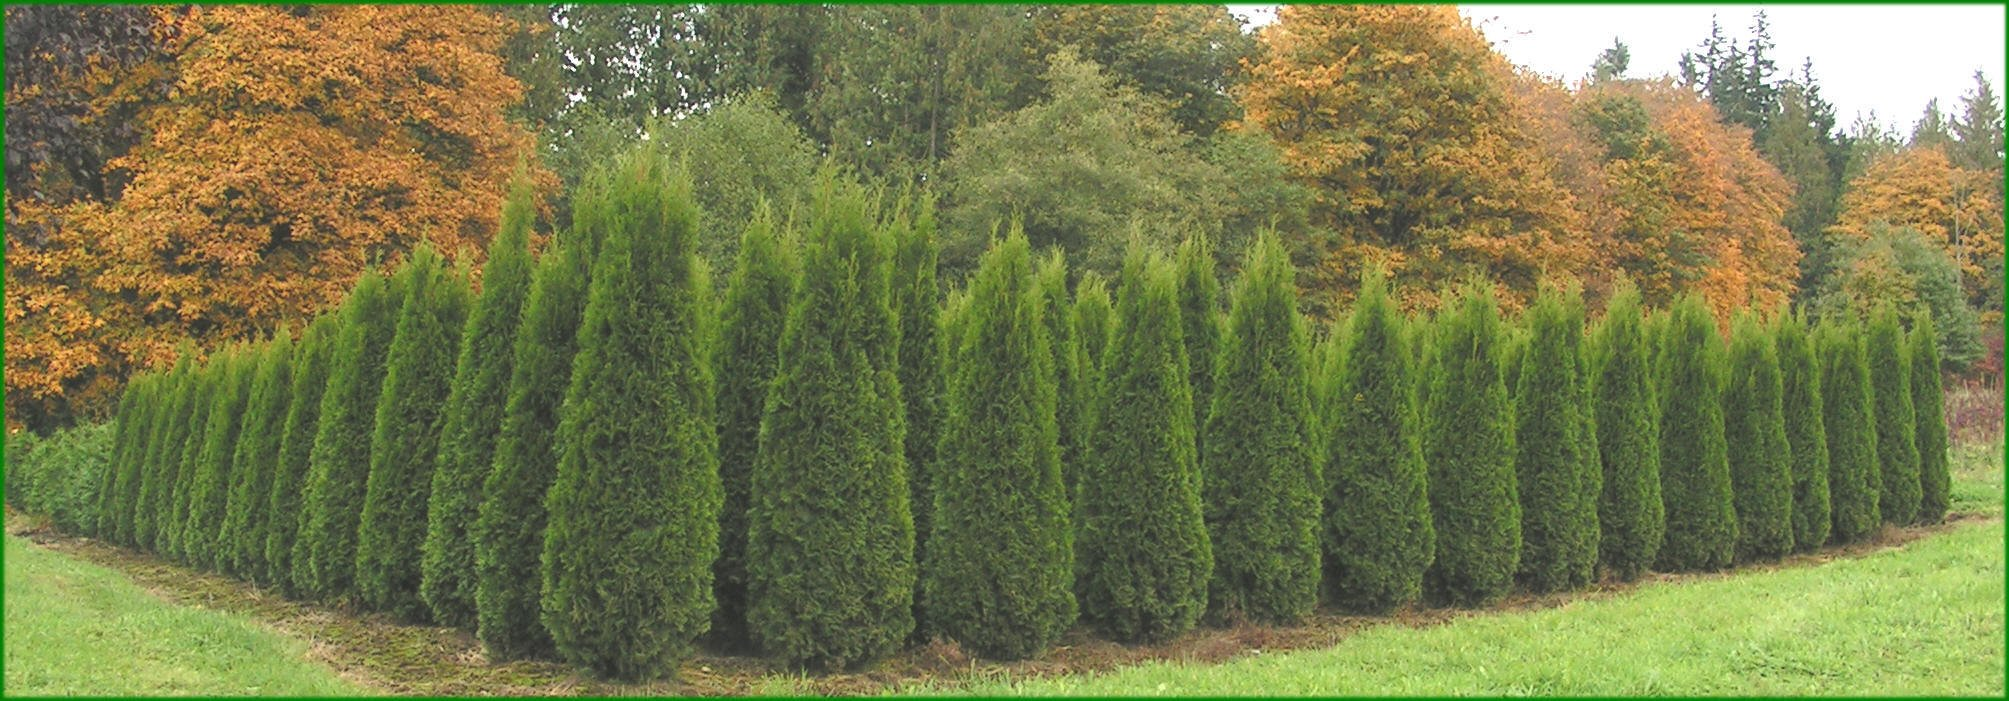 Thuja Emerald Green Arborvitae - 60 Live Plants - 2'' Pot Size - Evergreen Privacy Tree by Florida Foliage (Image #7)